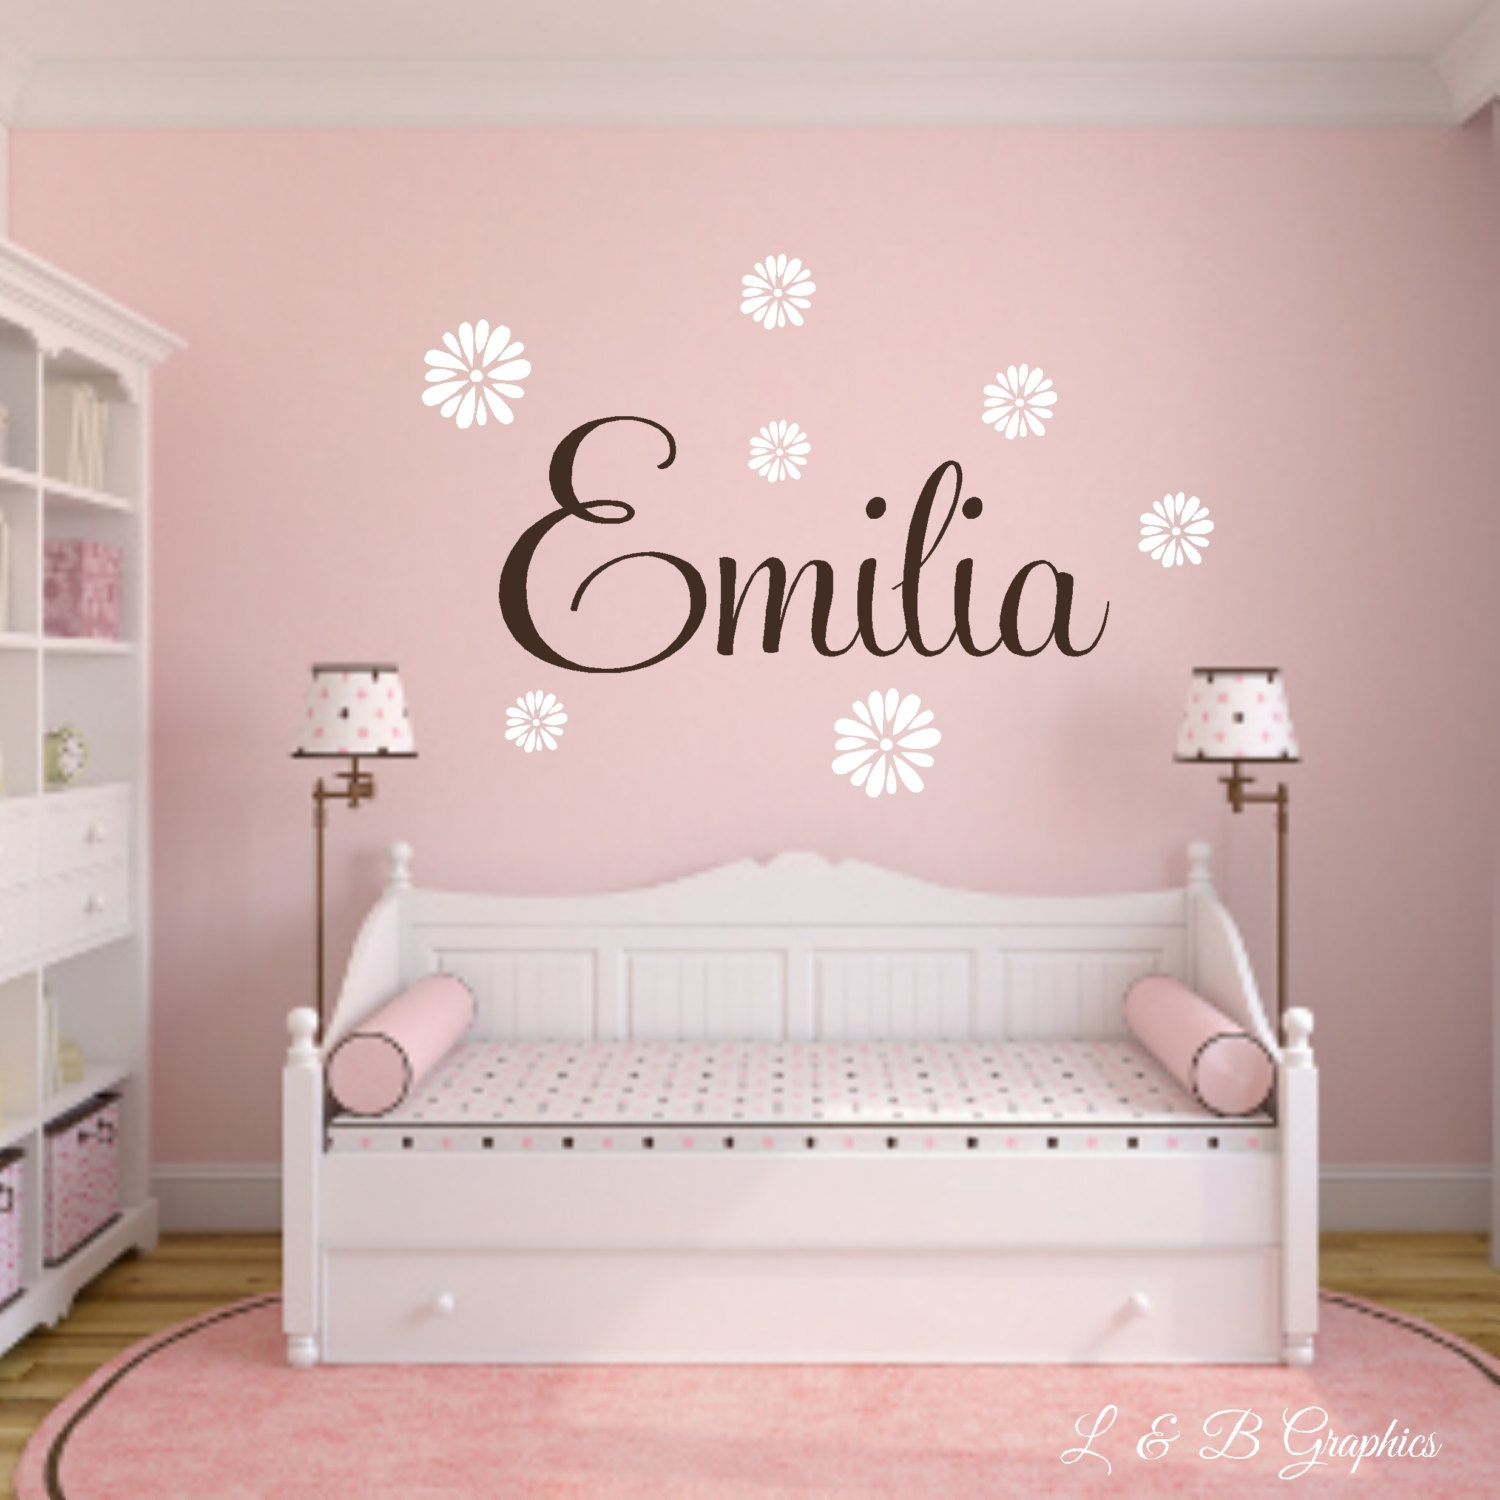 Pin On Vinyl Wall Decals By L B Graphics Www Landbgraphics